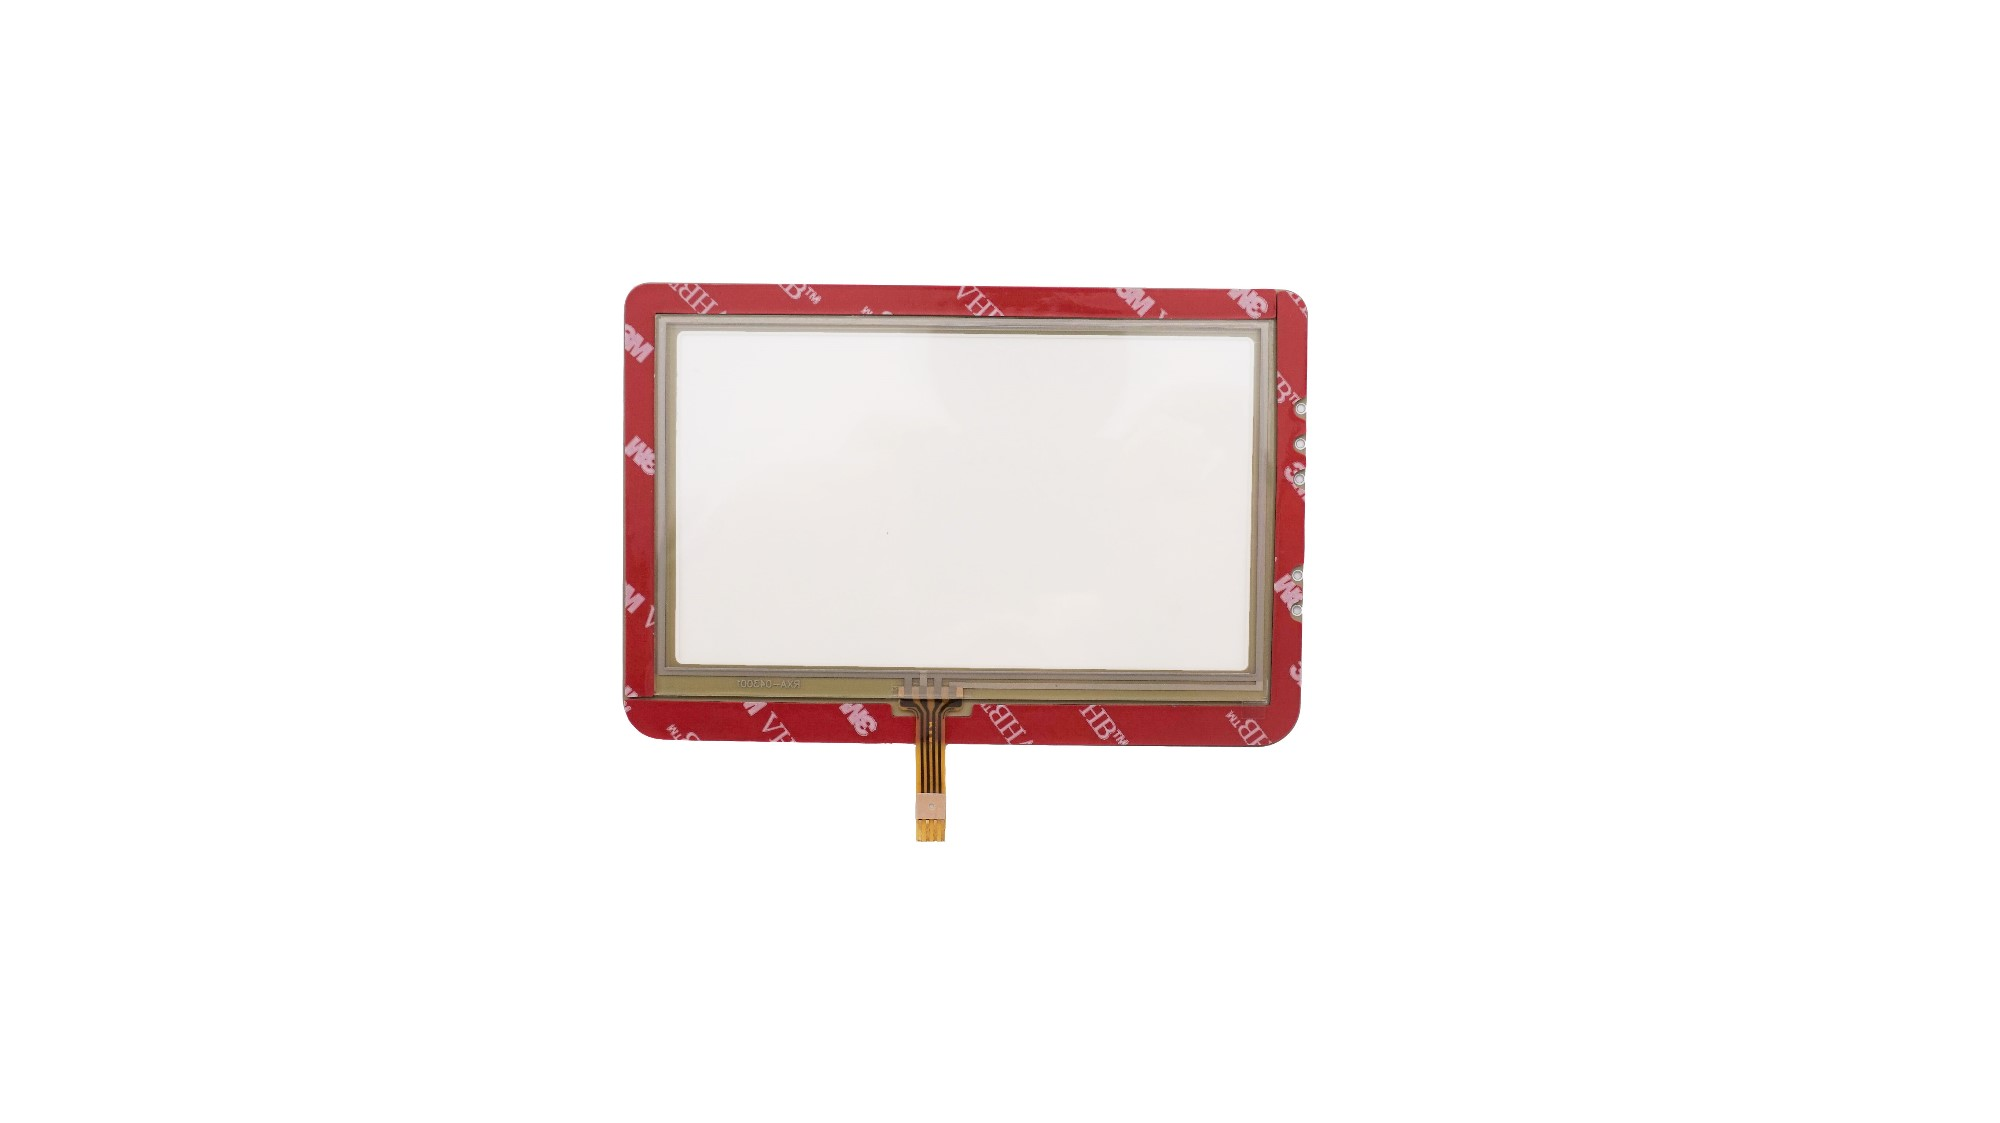 Custom China Capacitive And Resistive Speacial Custom Shaped Touch Screen, Capacitive And Resistive Speacial Custom Shaped Touch Screen Factory, Capacitive And Resistive Speacial Custom Shaped Touch Screen OEM